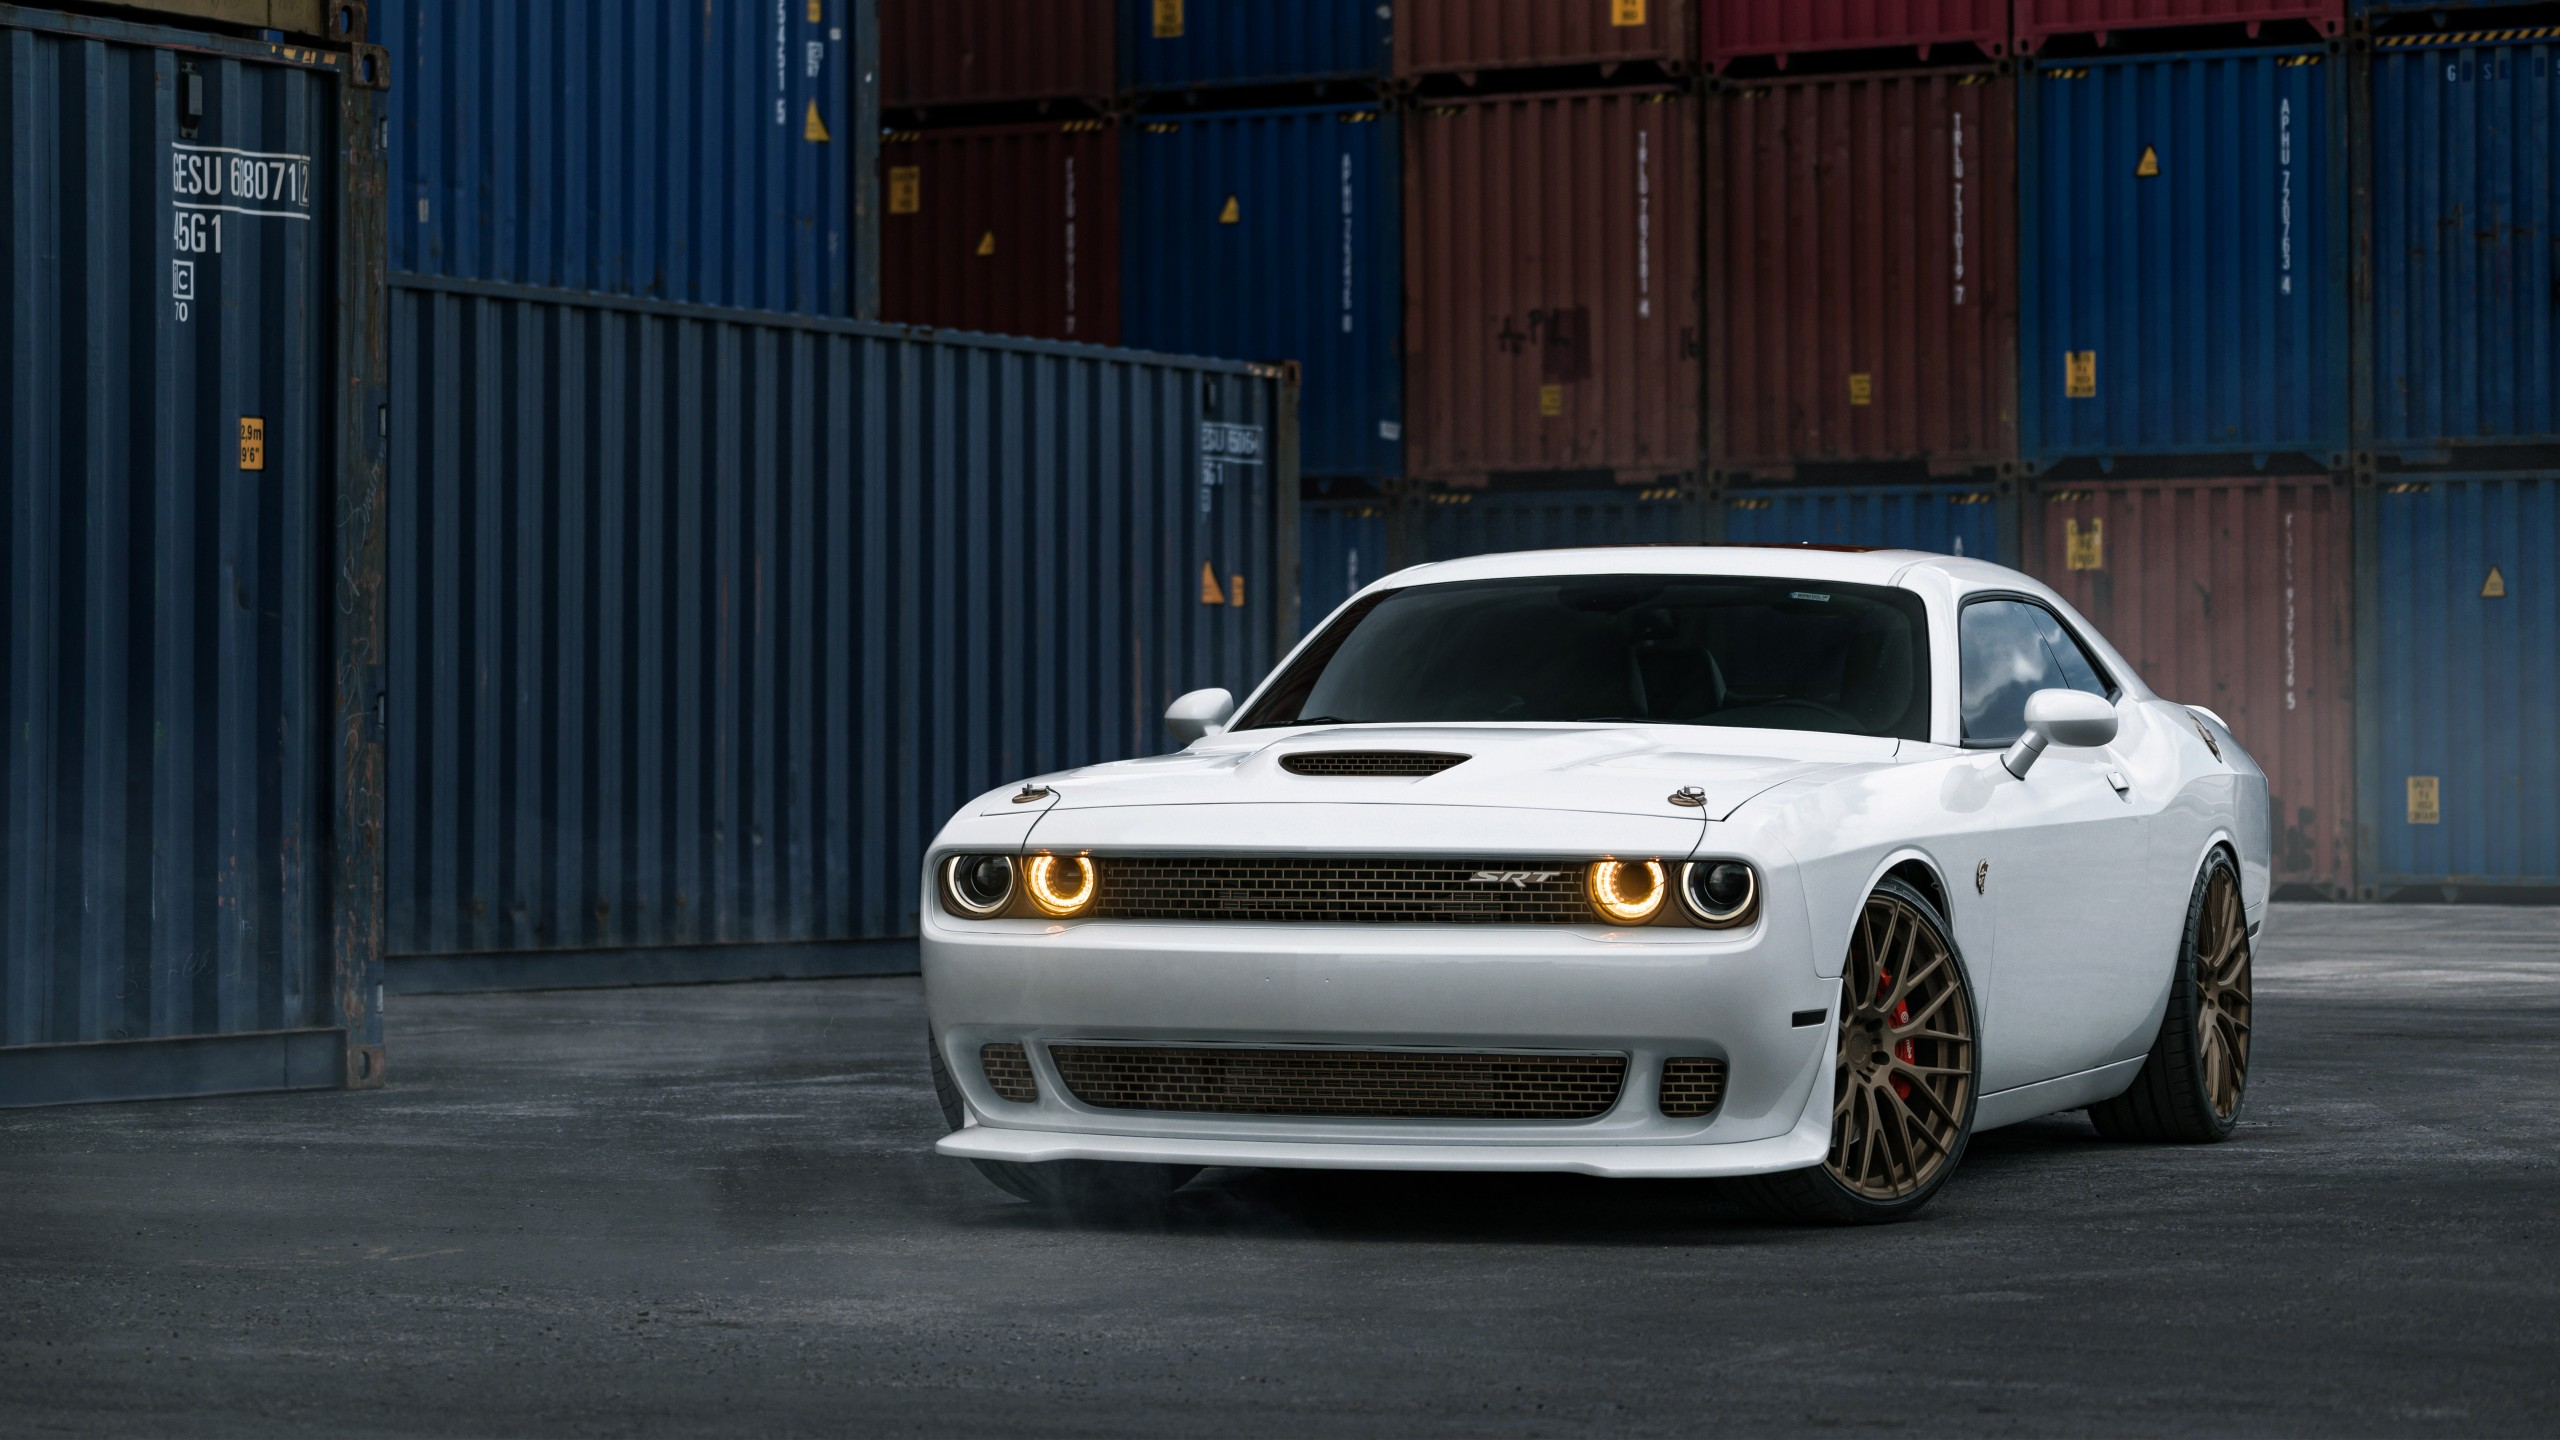 dodge challenger srt hellcat white wallpaper hd car wallpapers id 6945. Black Bedroom Furniture Sets. Home Design Ideas